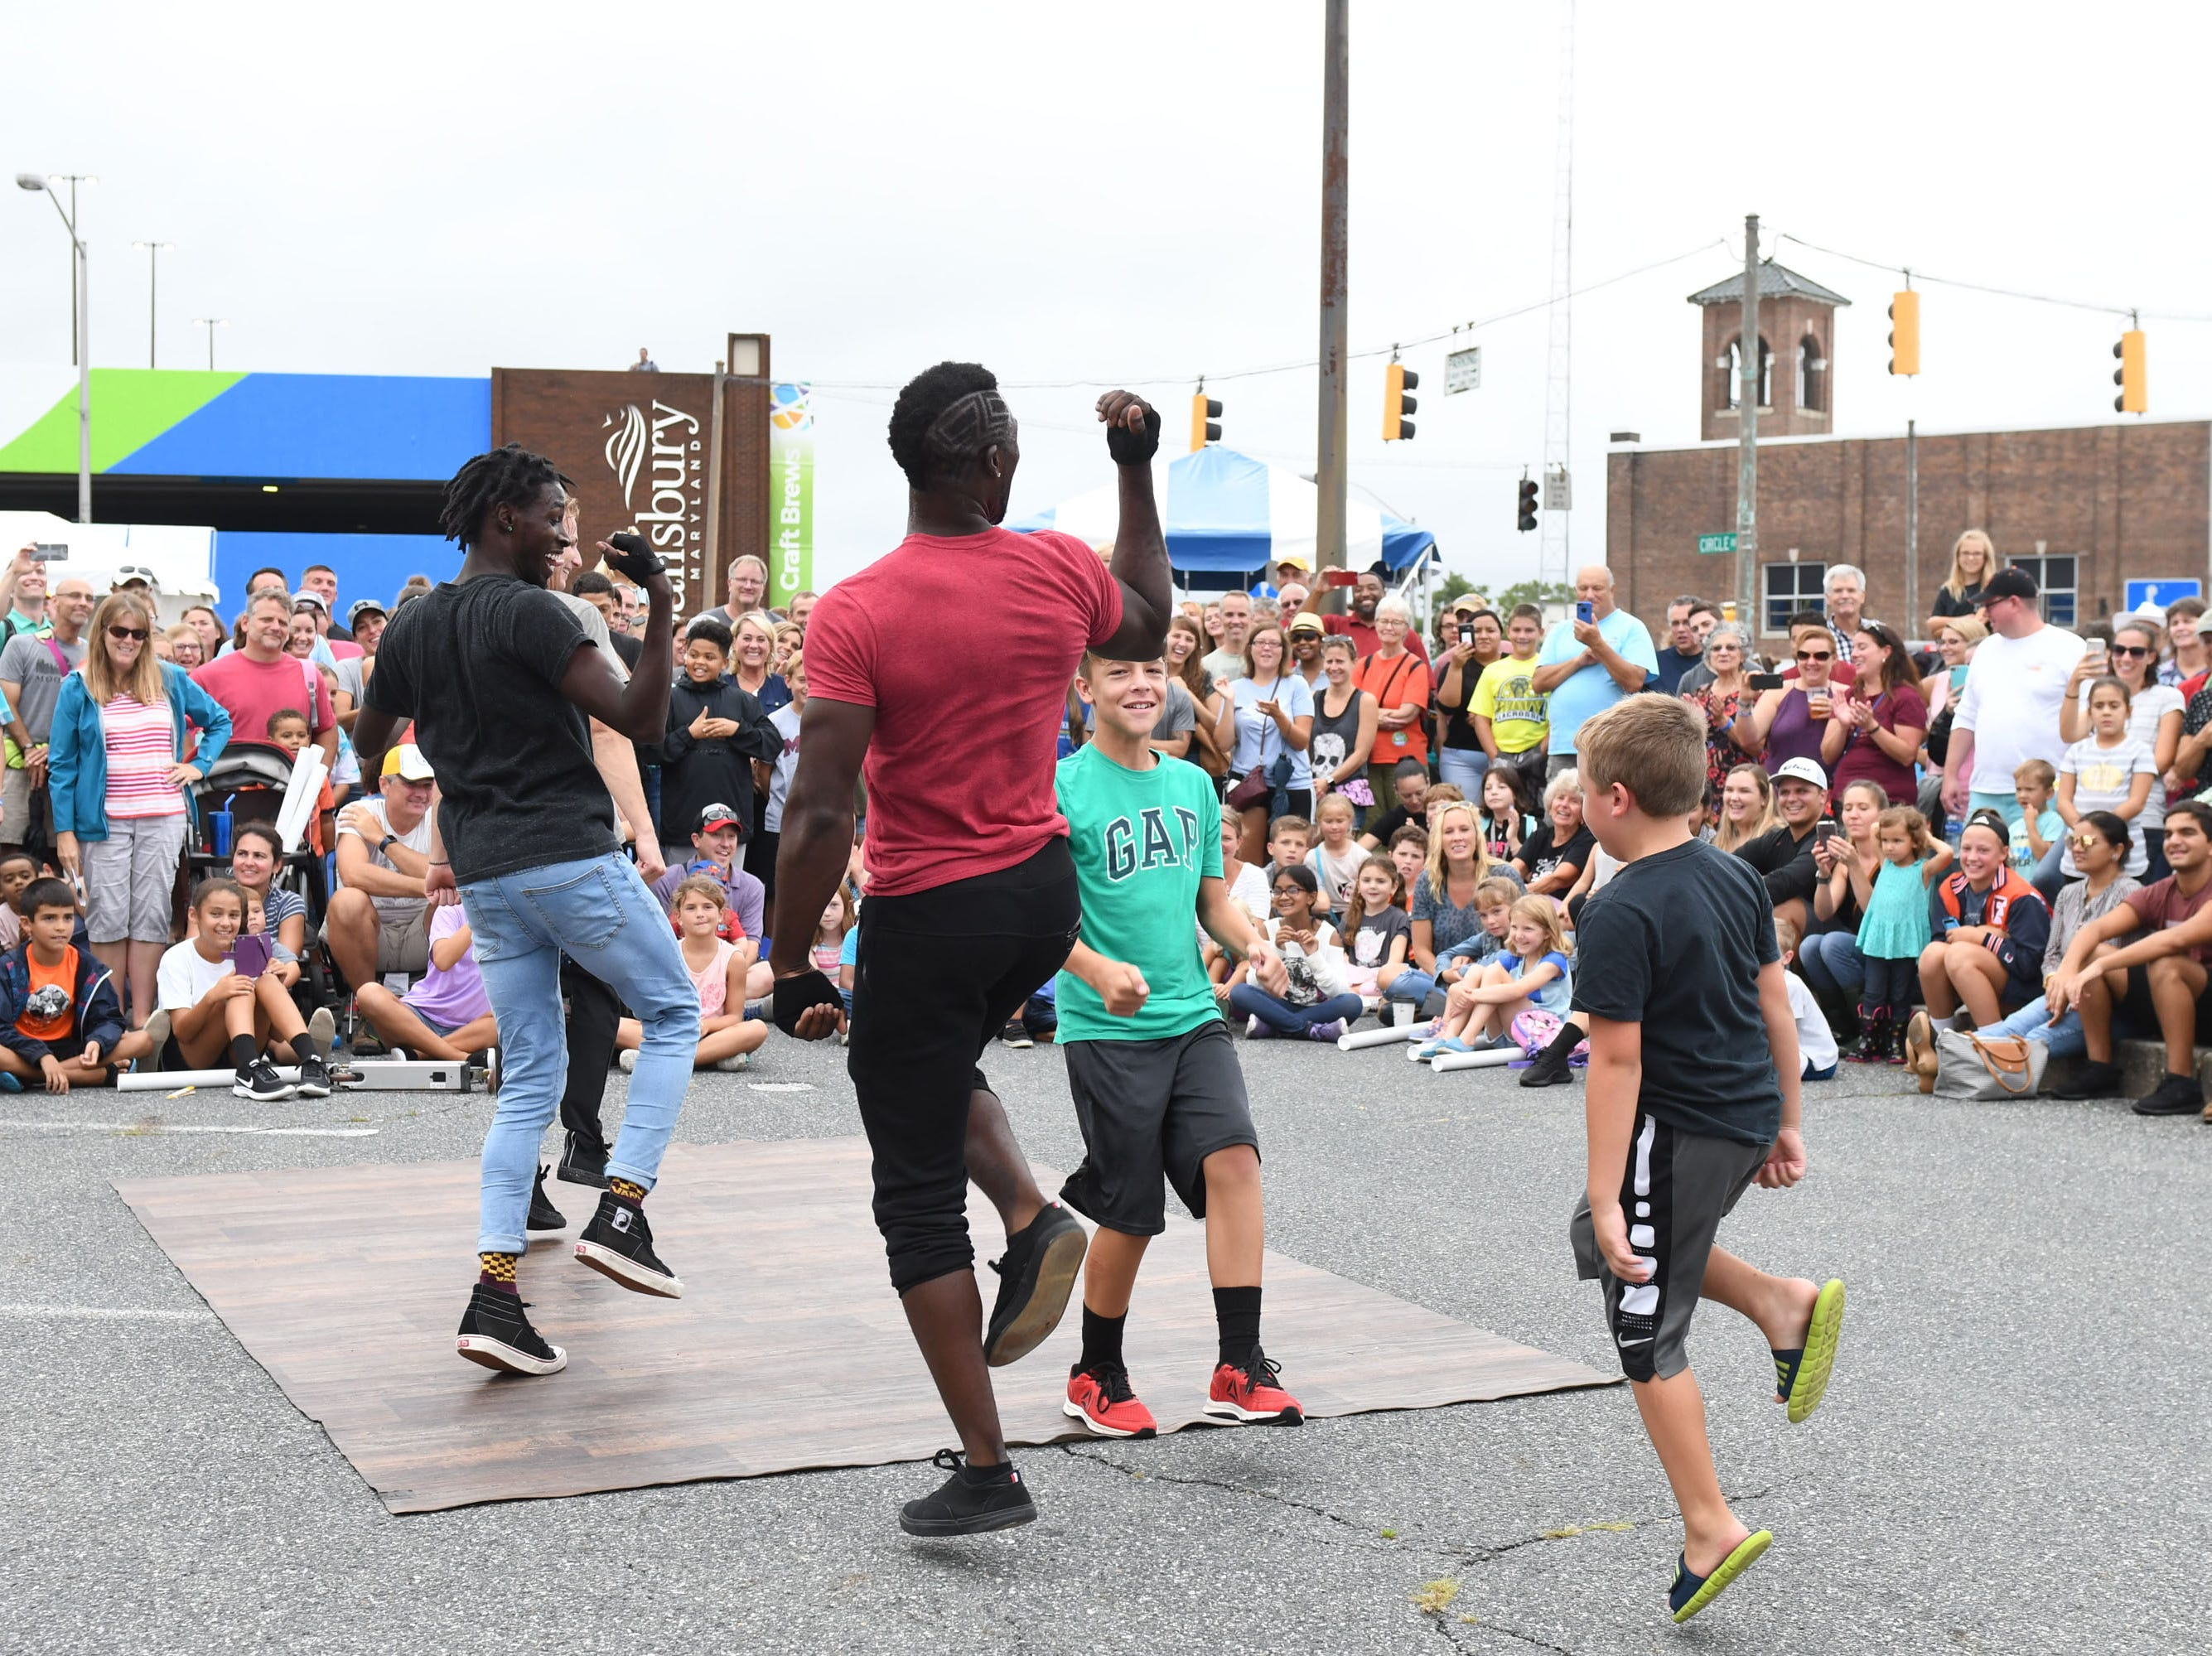 The Dancing on Air Crew got the crowd into the action during the 78th National Folk Festival on Saturday, Sept. 8, 2018.